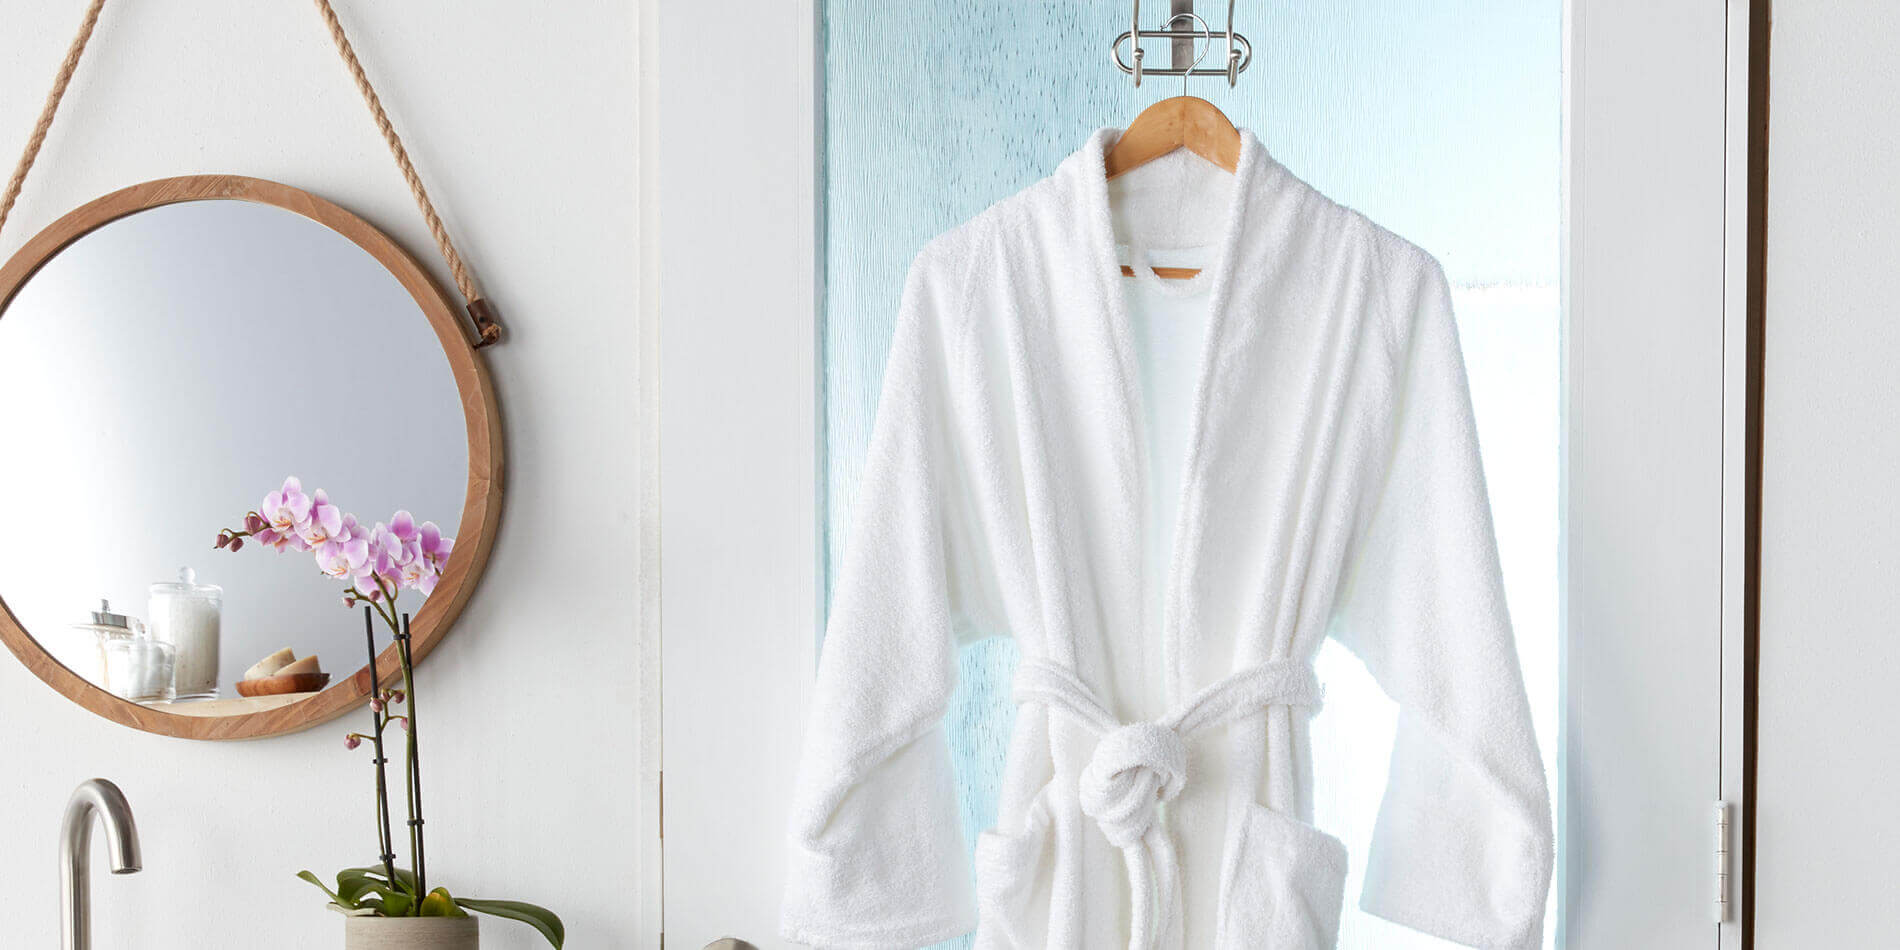 Different Uses of Your Bathrobes 1